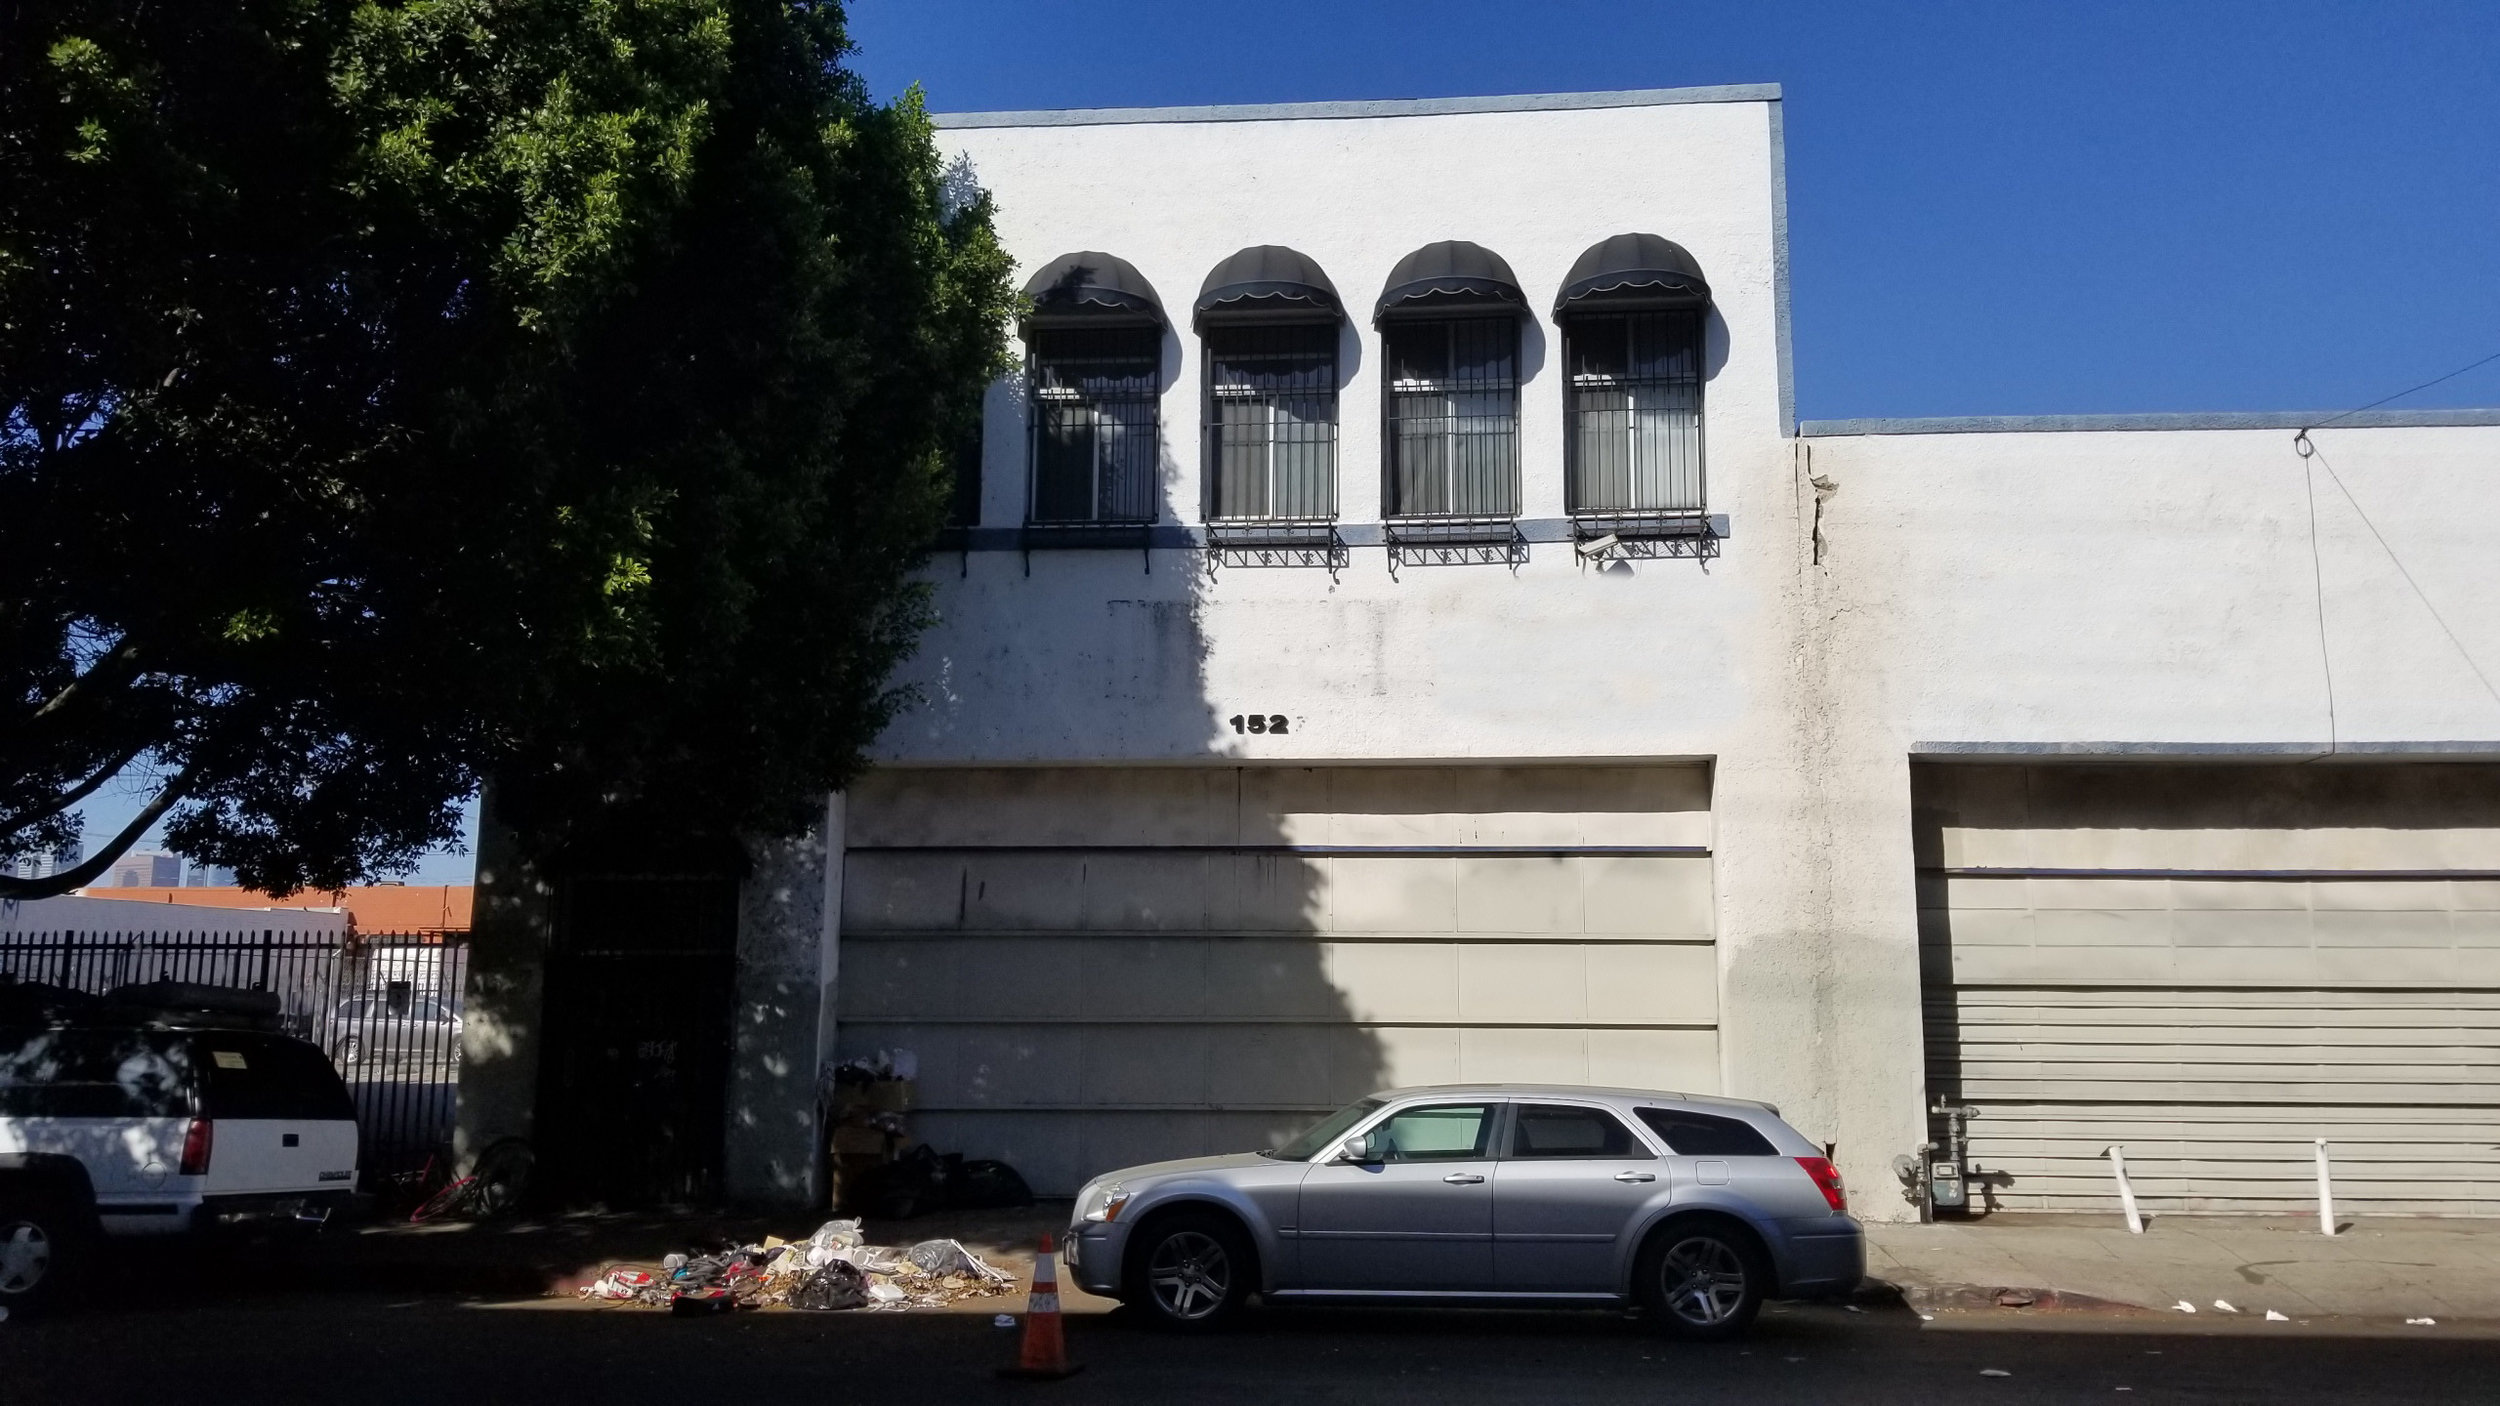 1527 NEWTON STreet, LOS ANGELES, CA 90021 - - Lease Rate: $ 0.95/SF- Type: Warehouse- Leasable Space: 10,000 SF (2 Story Building)1st Floor: 5,000 SF Warehouse2nd Floor: 5,000 SF Office